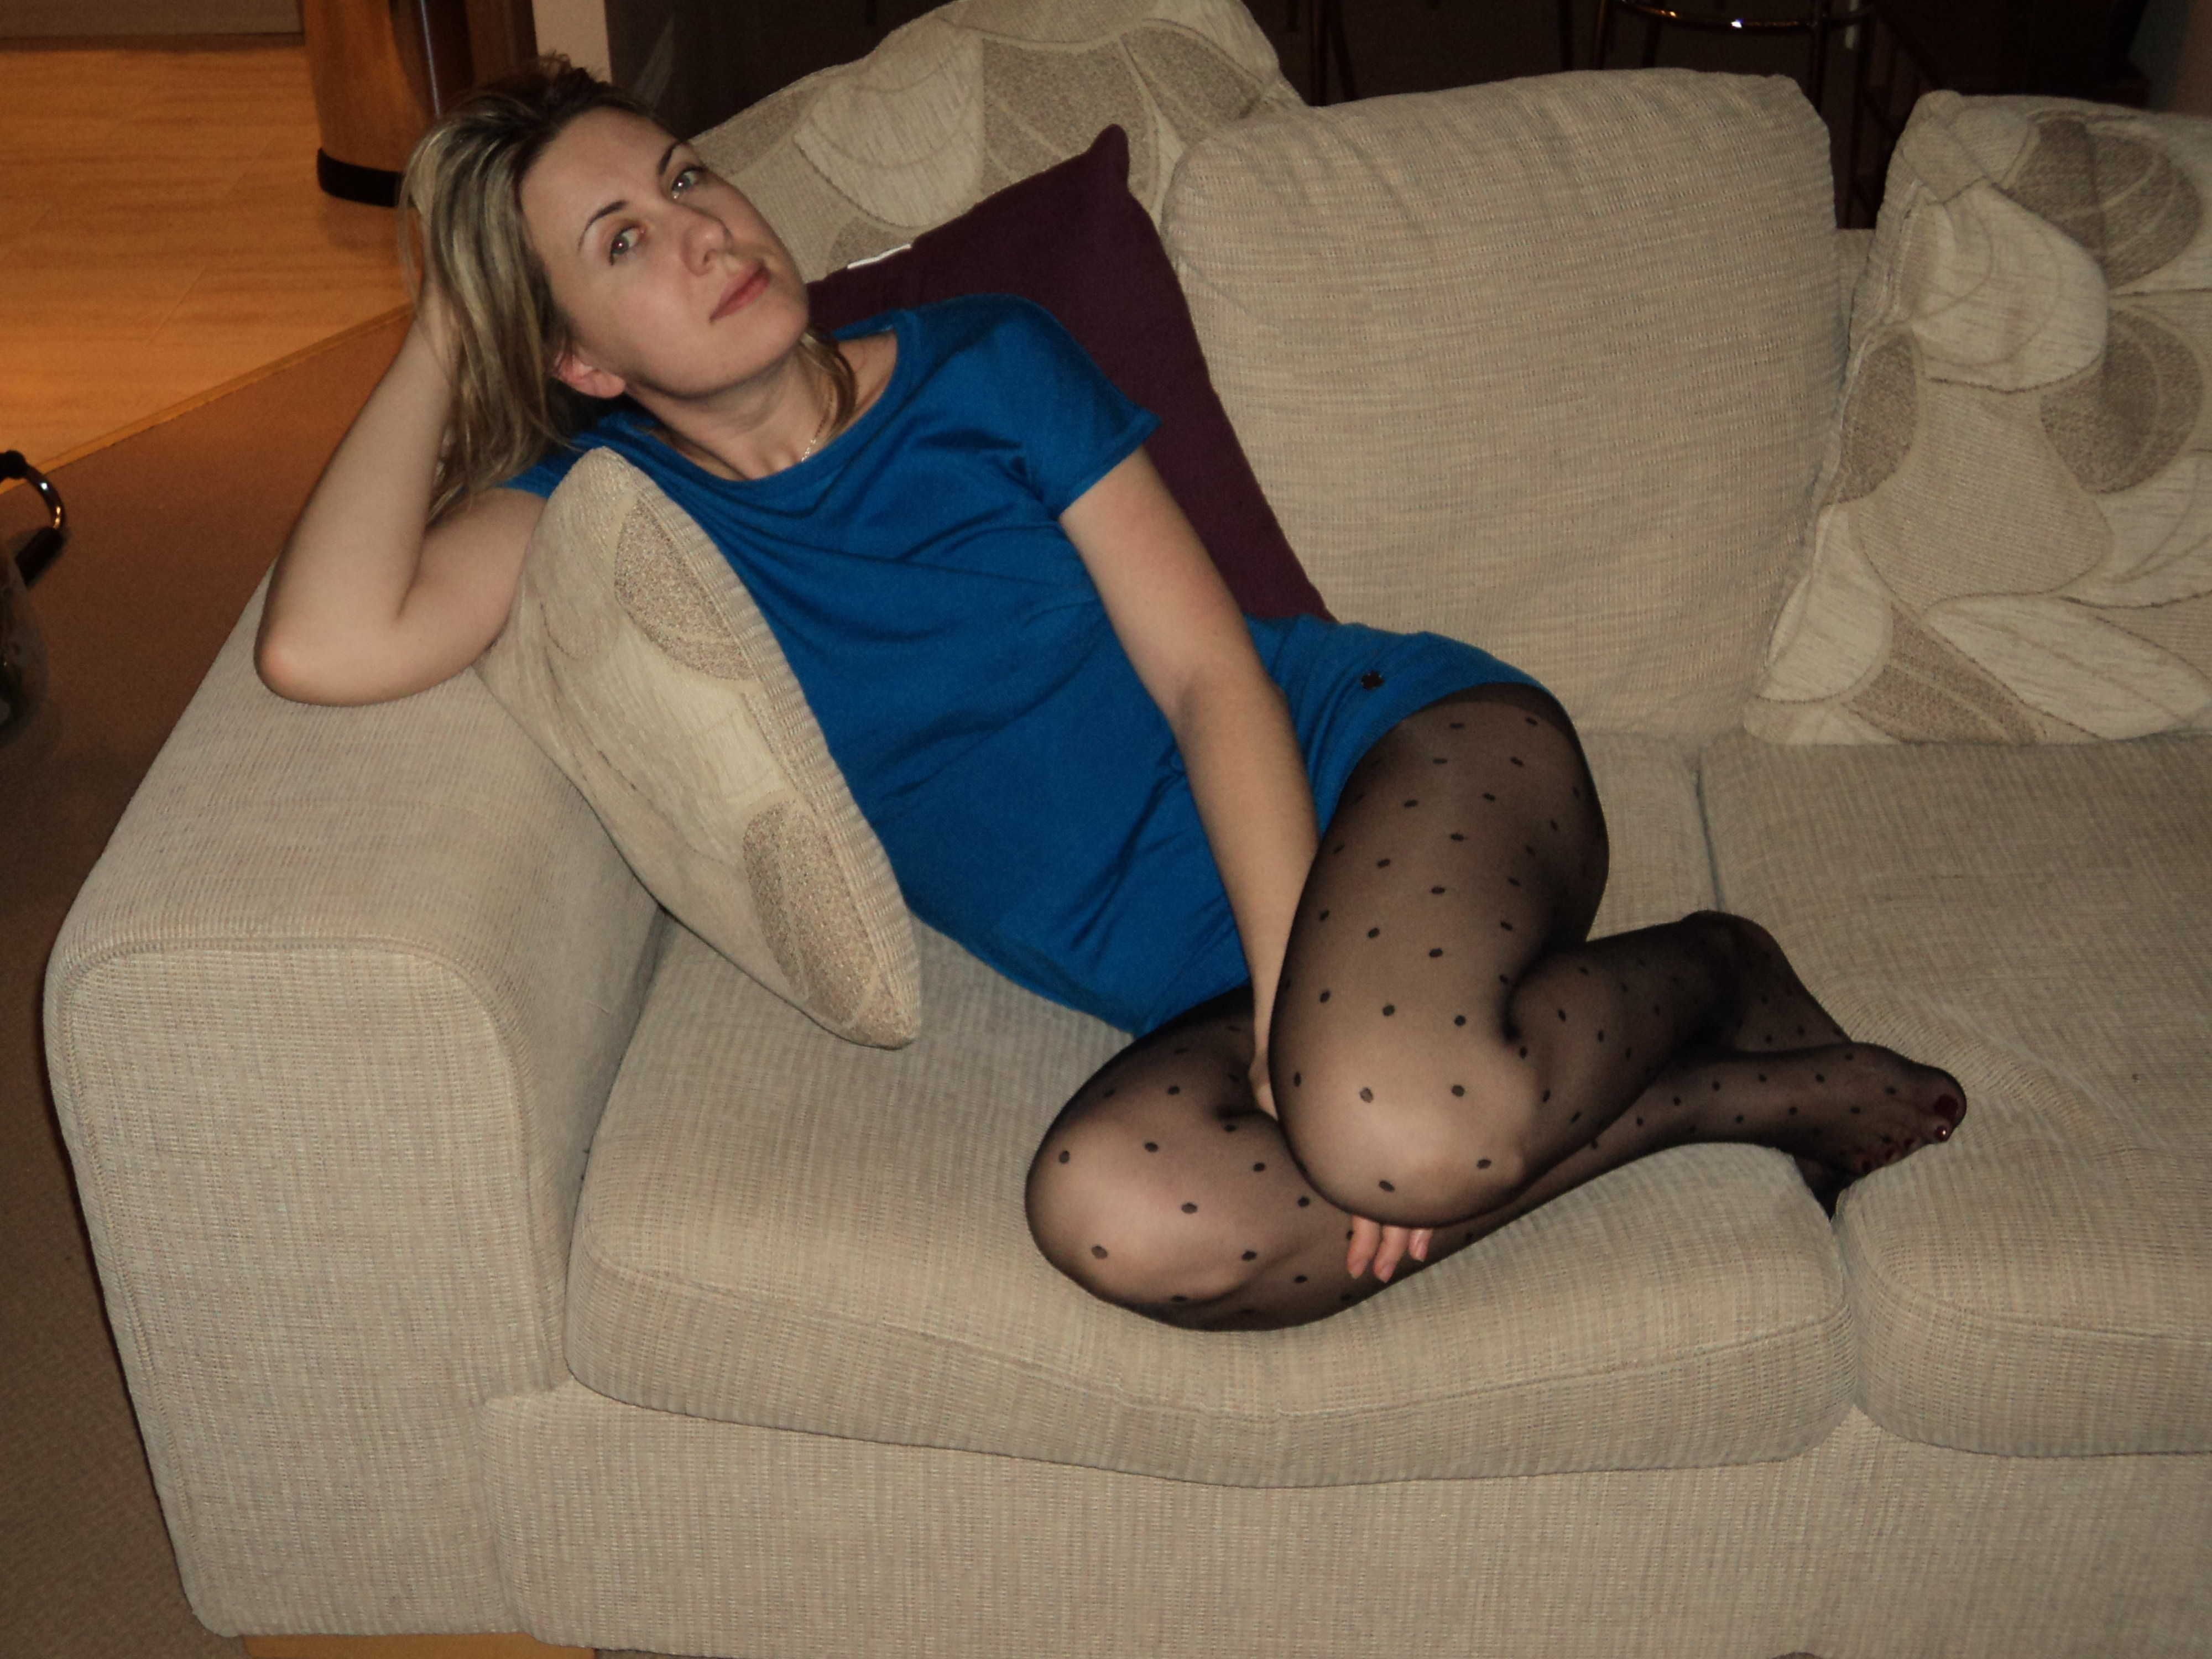 Candid girls wearing pantyhose remarkable